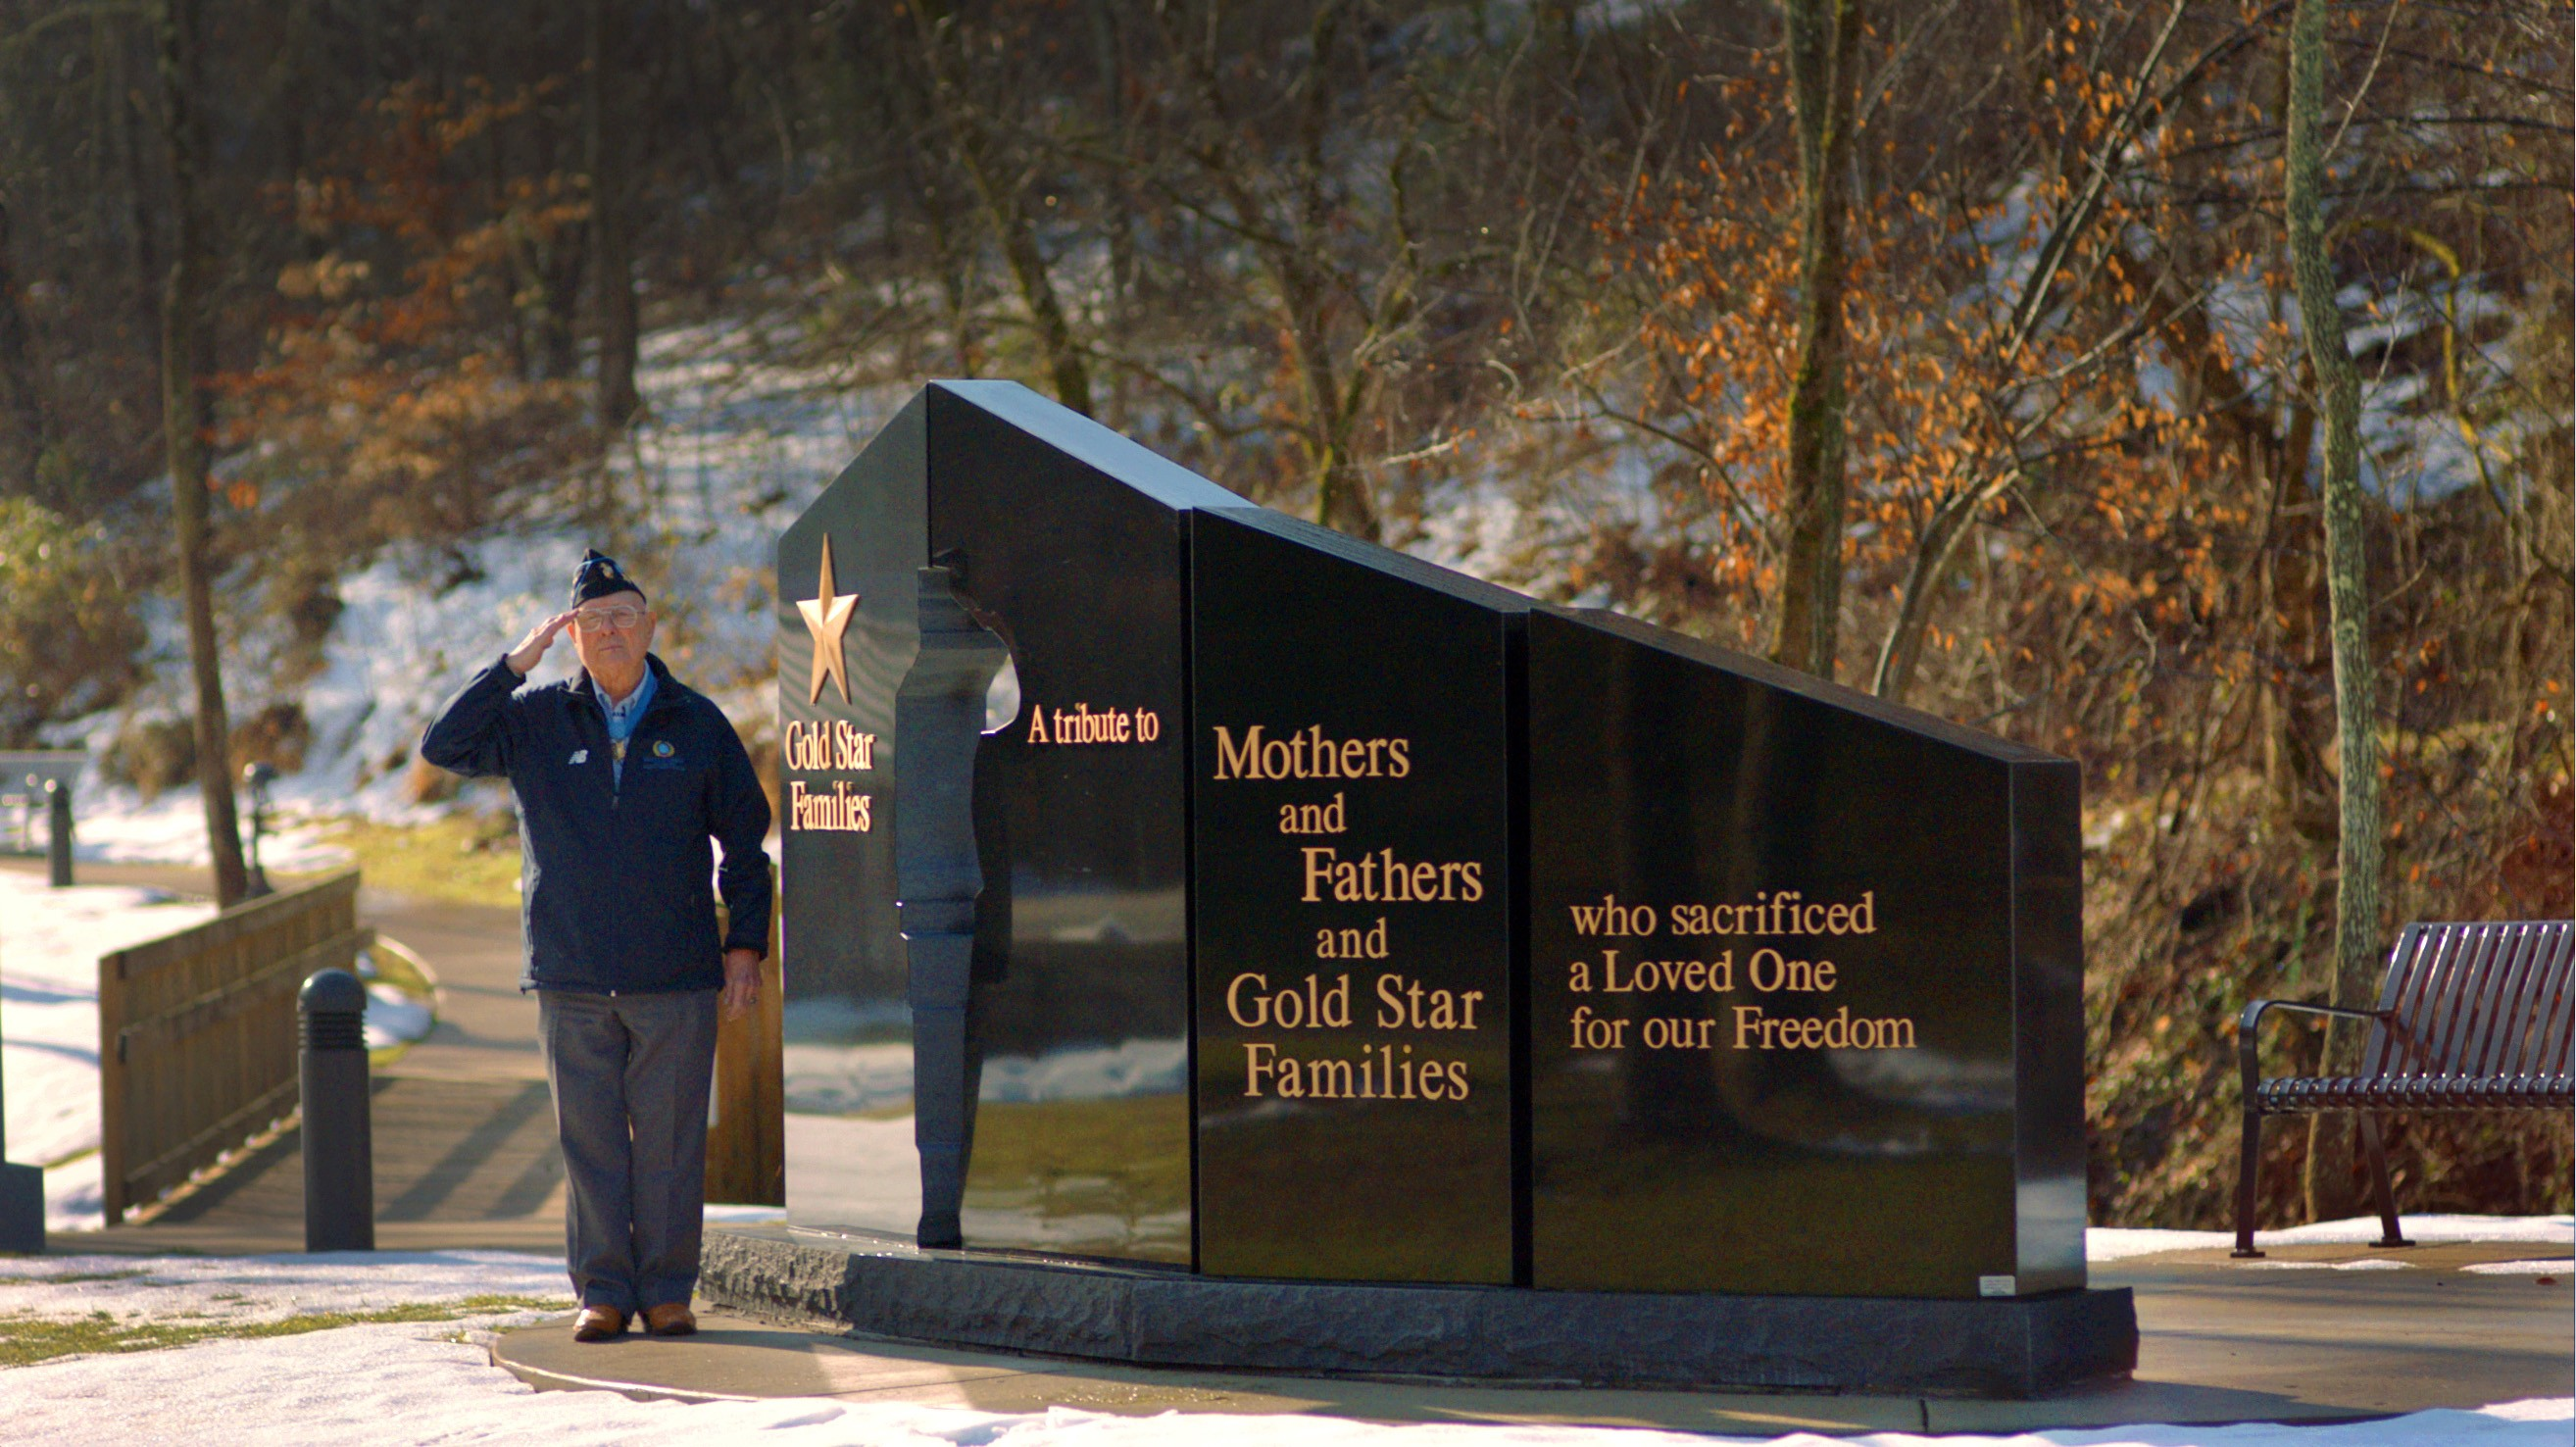 monuments-for-gold-star-families-18-hr